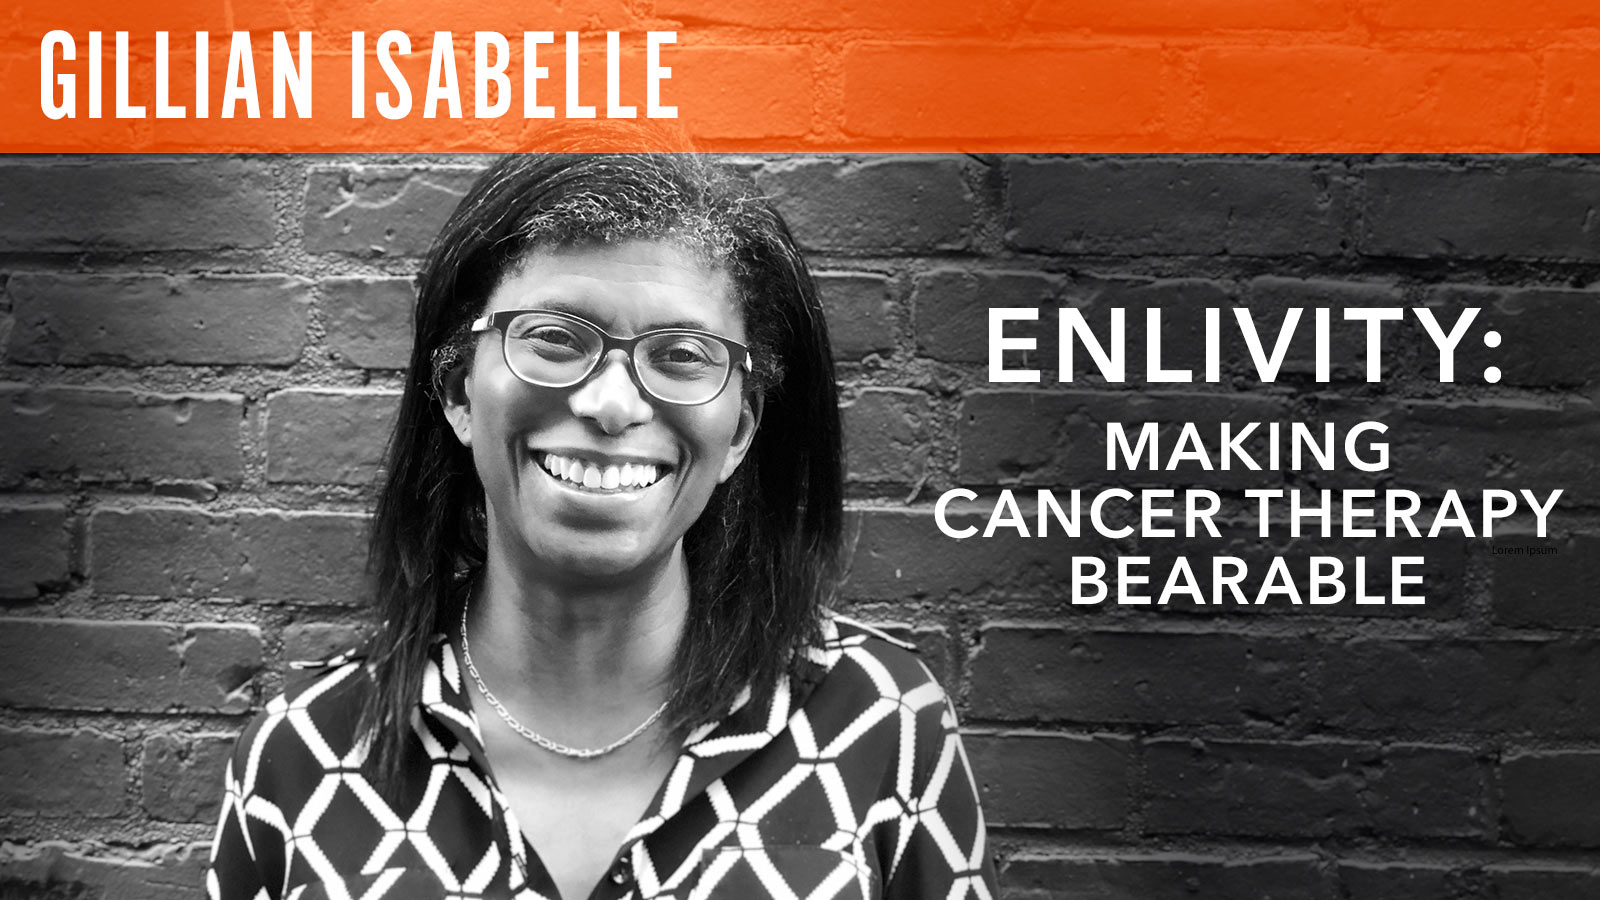 Gillian Isabelle  Enlivity: Making Cancer Therapy Bearable